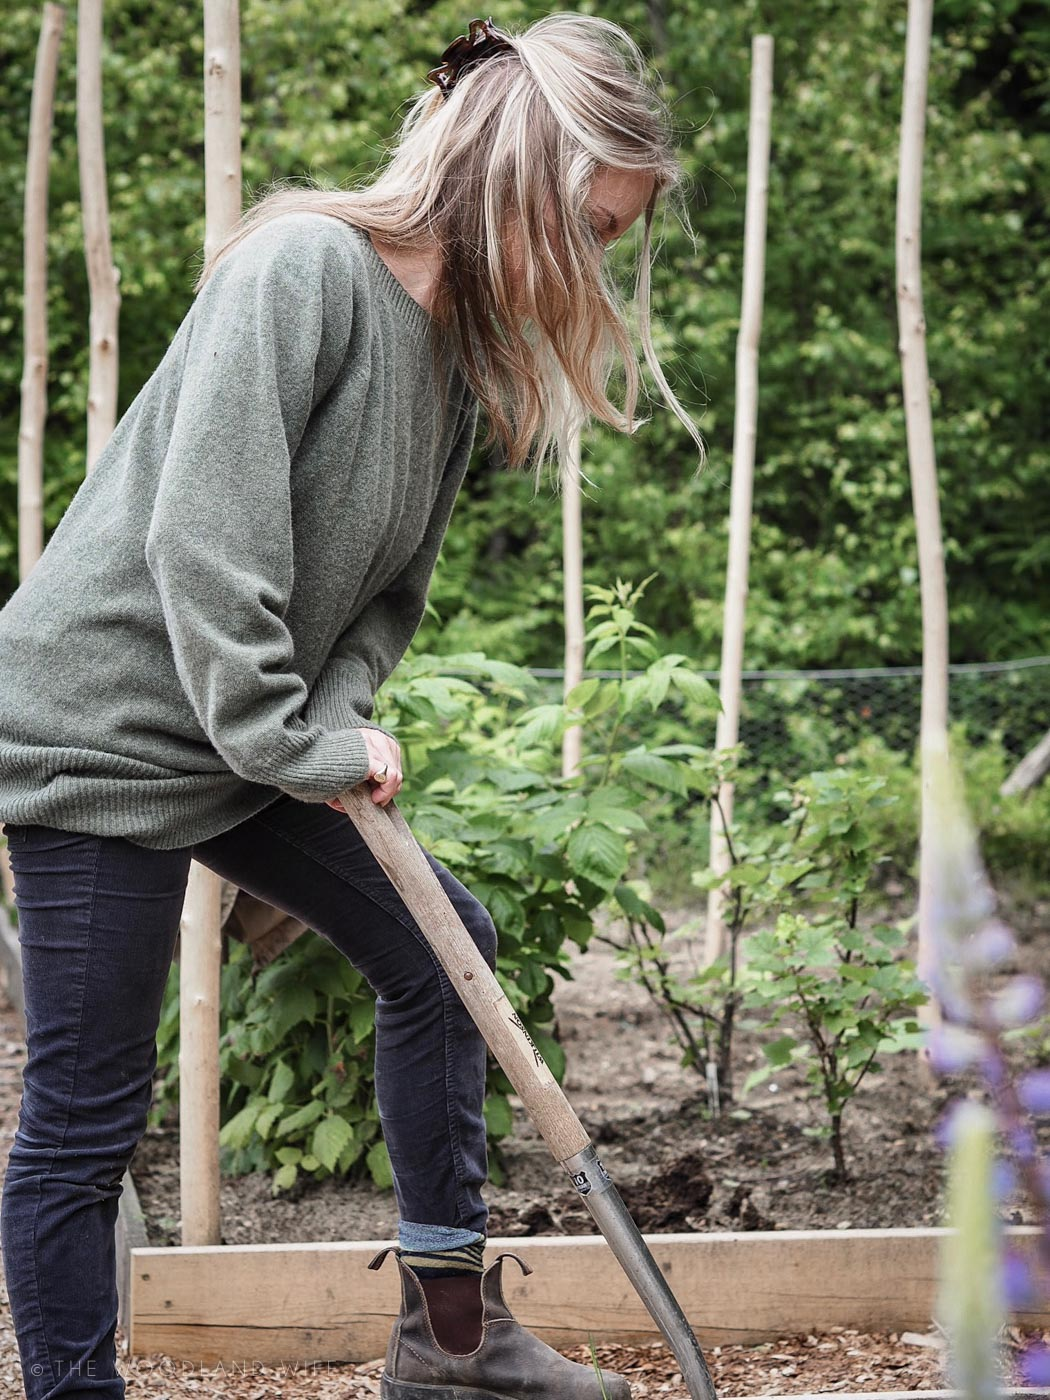 The Woodland Wife - Woodland Vegetable Garden - Grow Your Own - Celtic and Co - Womens Knitwear